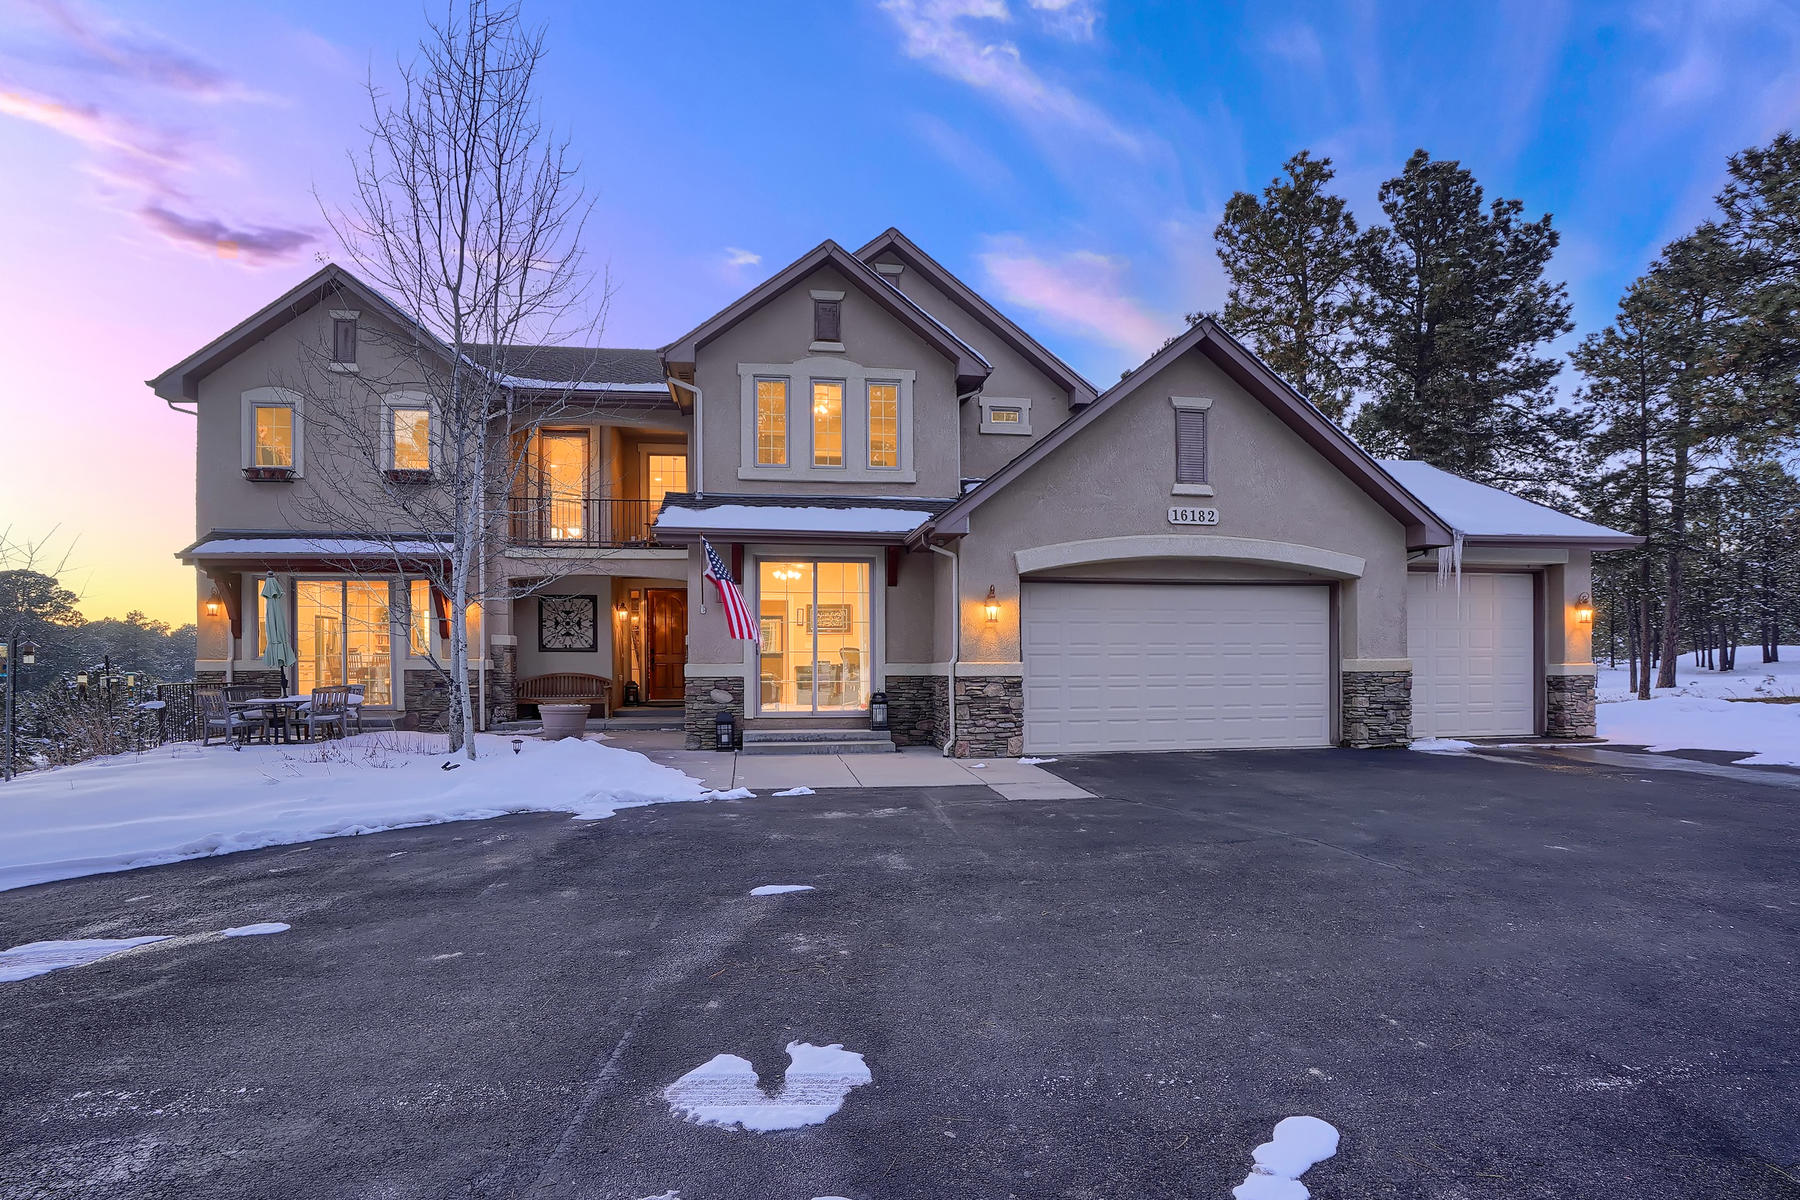 Single Family Homes for Sale at Secluded Black Forest Sanctuary 16182 Timber Meadow Drive Colorado Springs, Colorado 80908 United States